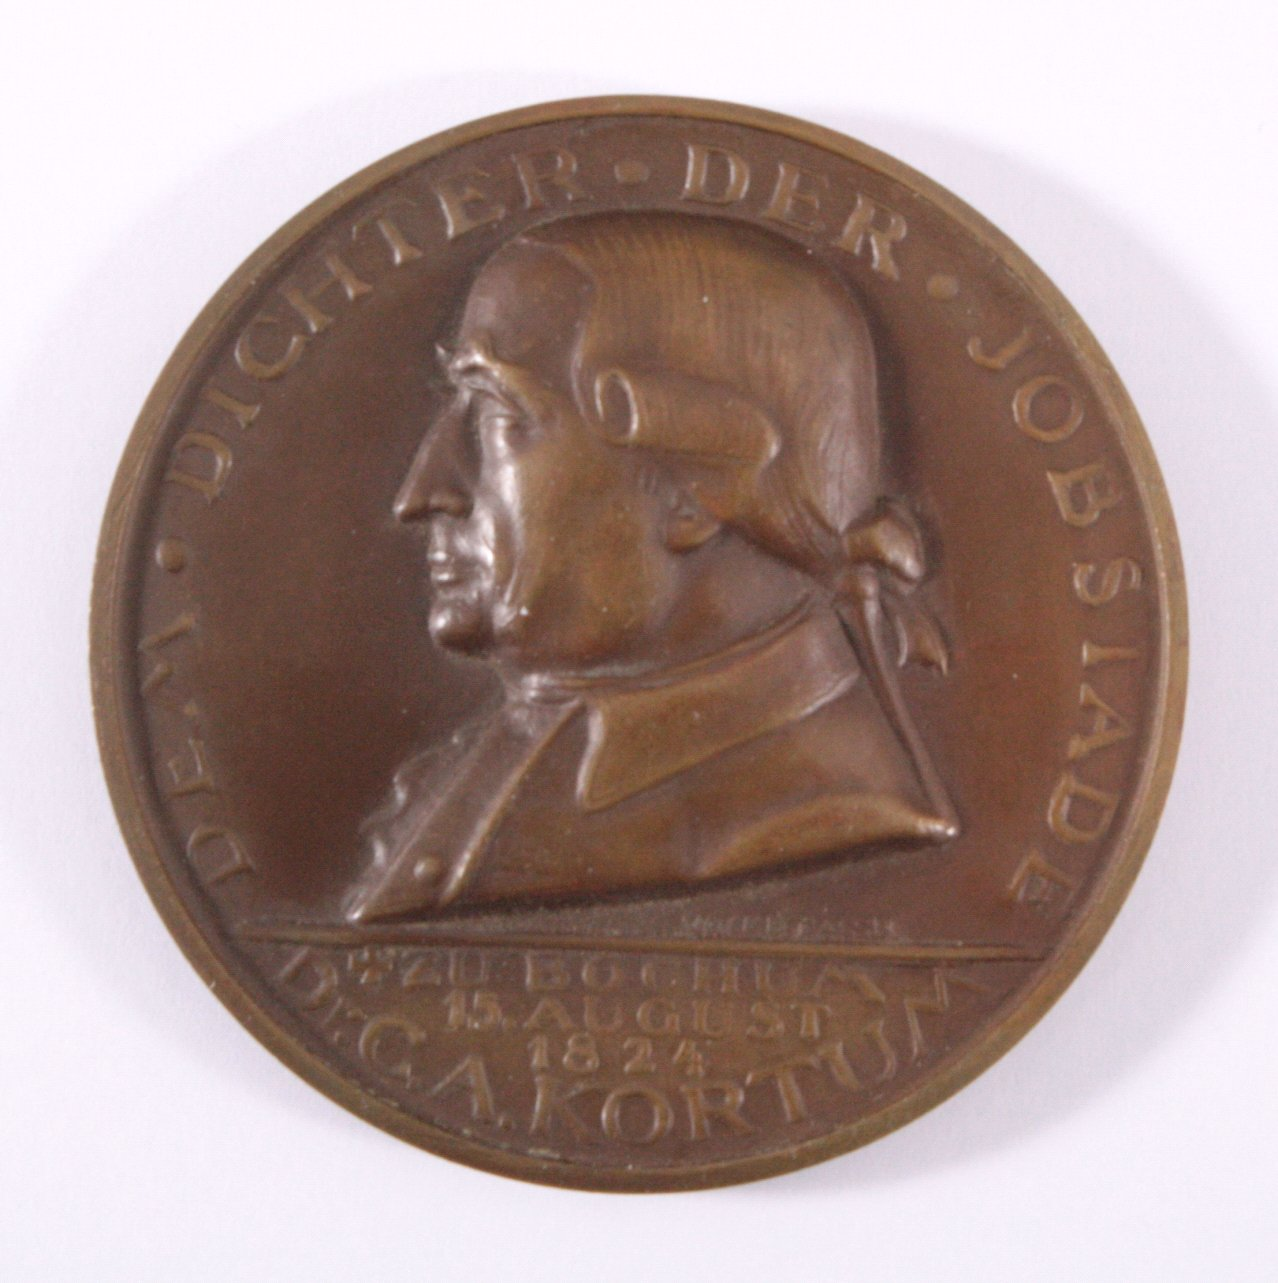 Personenmedaille Dr. Carl Arnold (1745-1824)